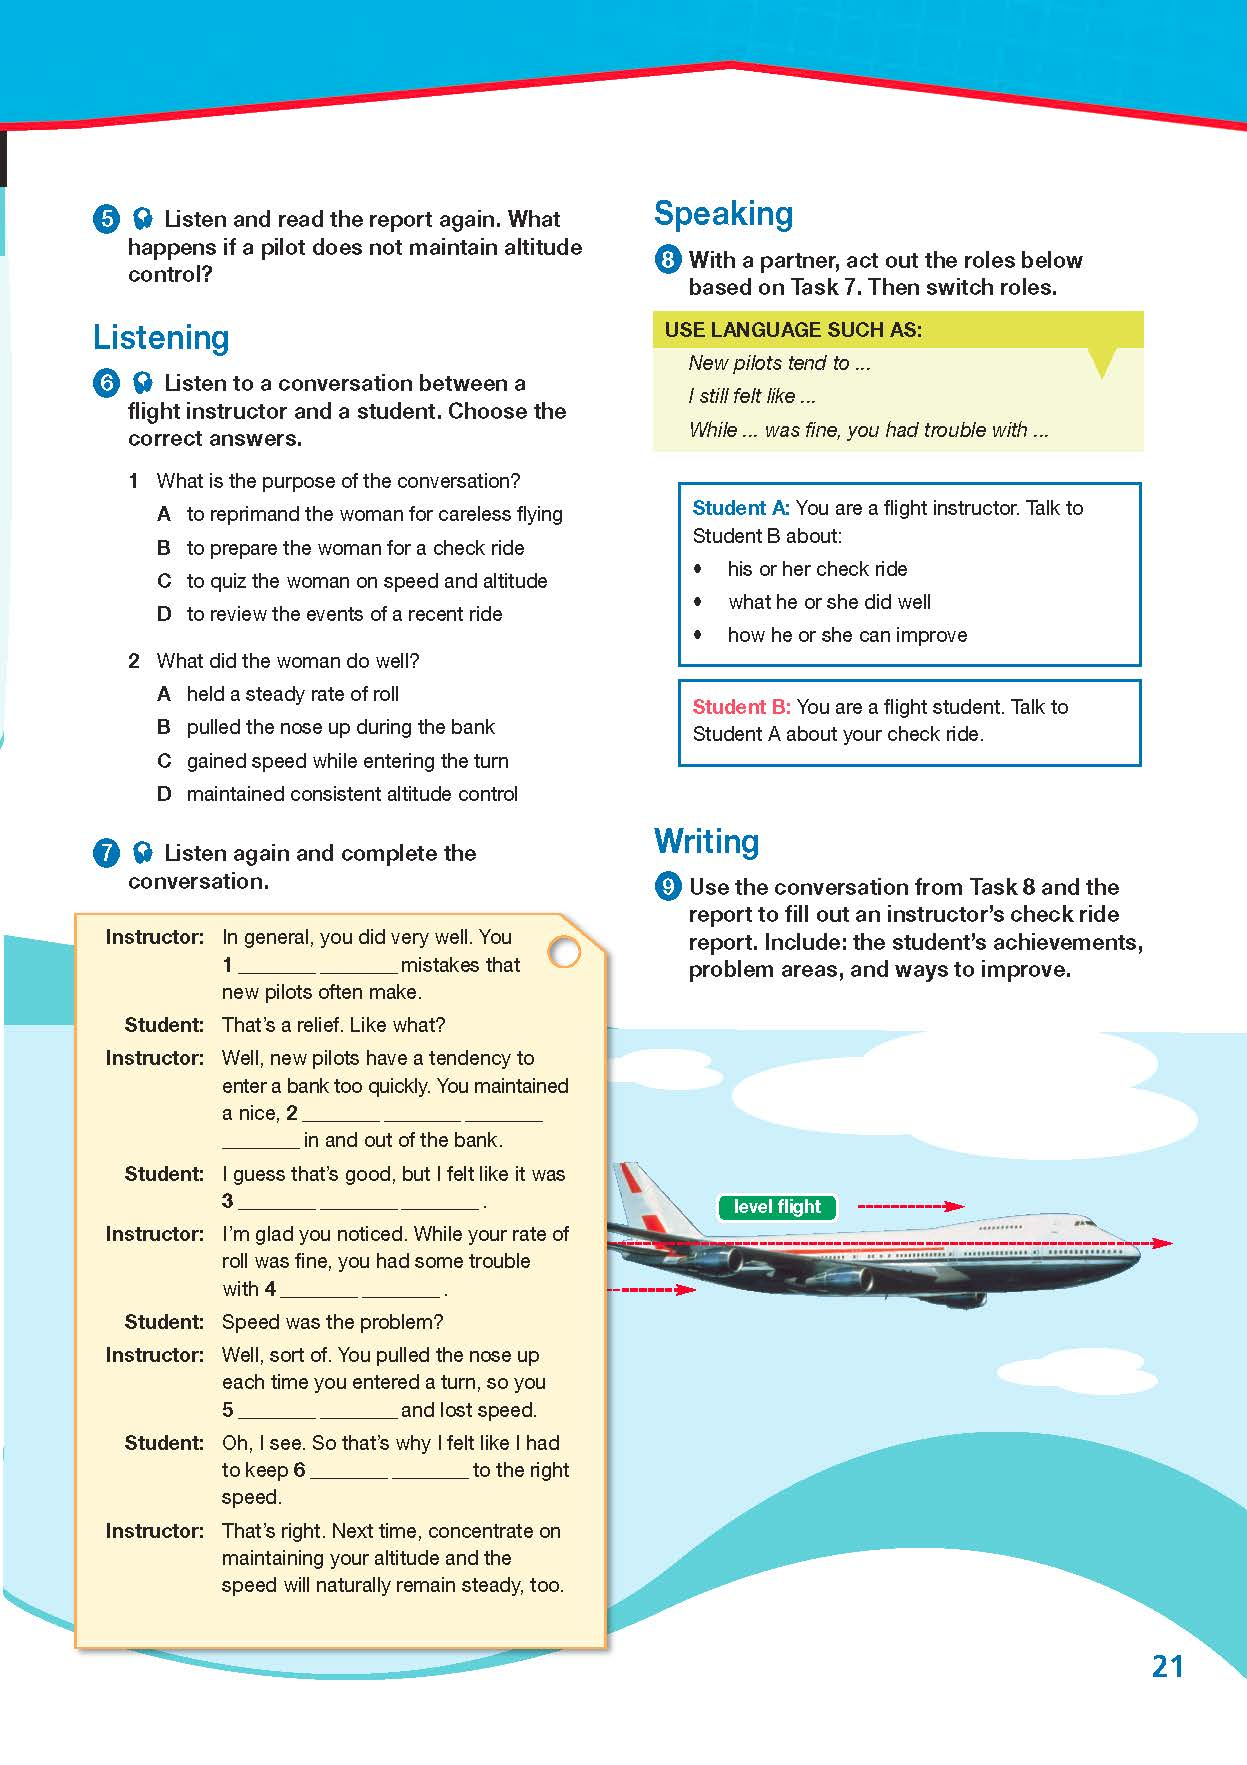 ESP English for Specific Purposes - Career Paths: Civil Aviation - Sample Page 4